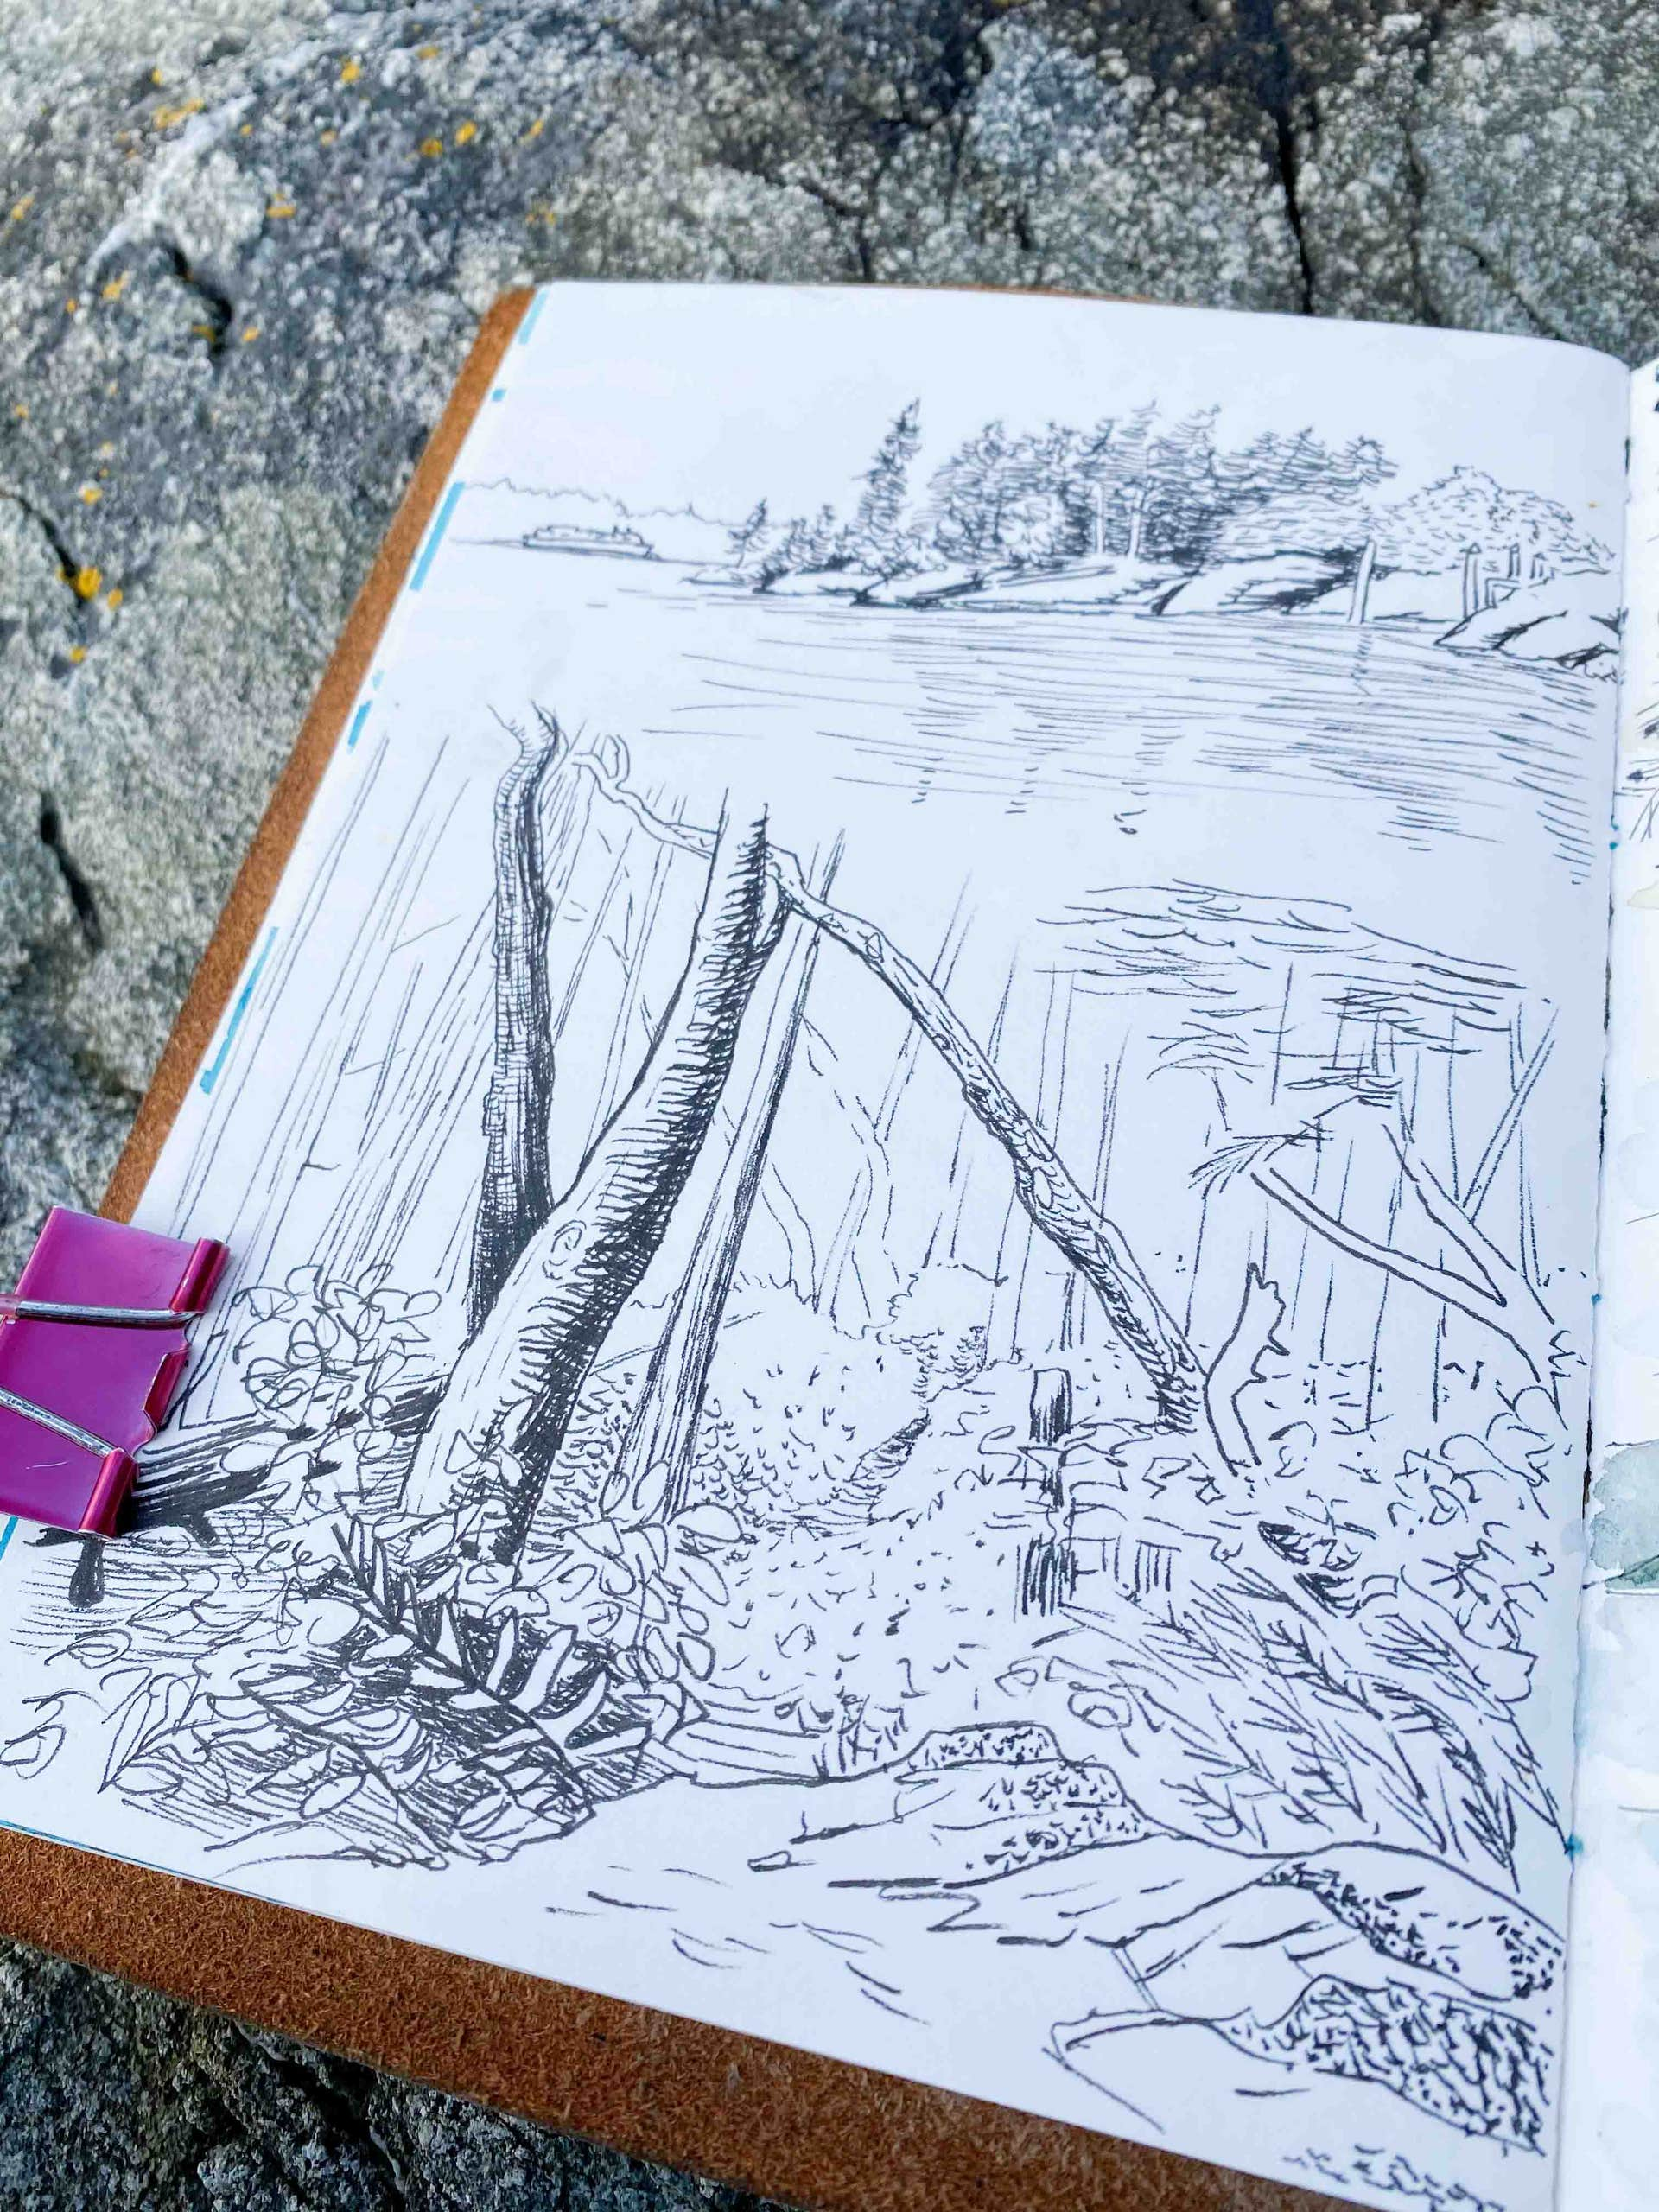 Nature sketch of a forest in pen